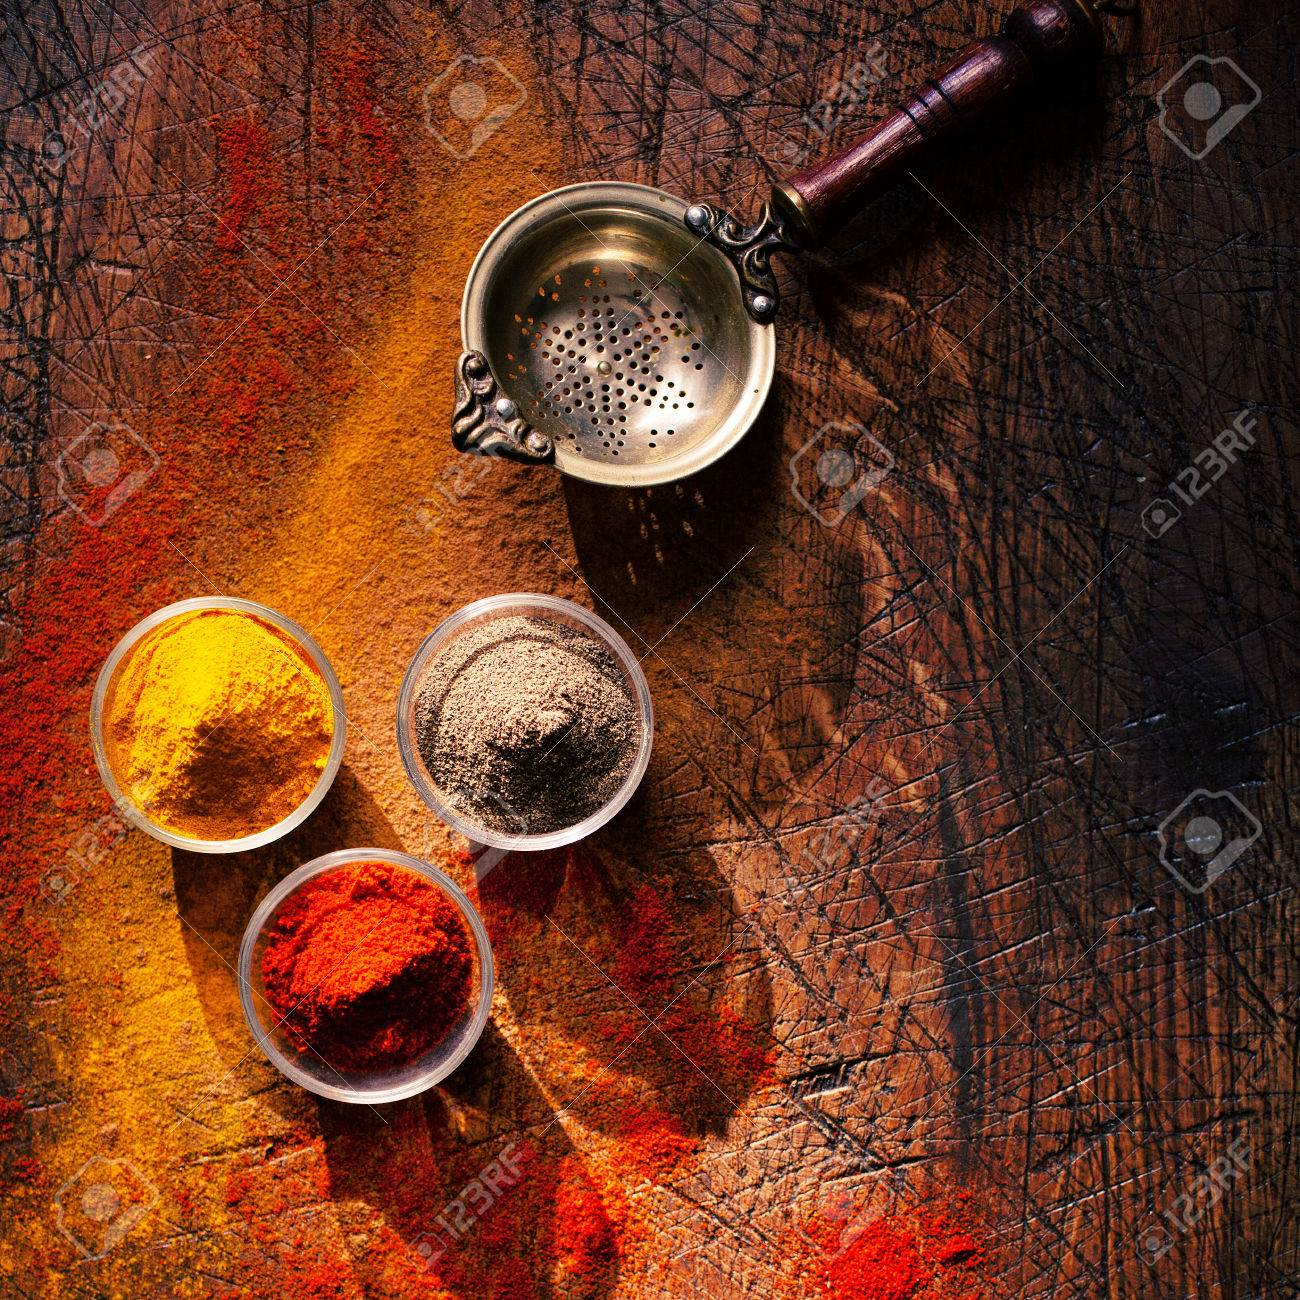 Overhead view of three bowls of spice in a country kitchen on an old scored wooden surface with scattered powder and an old retro strainer or sieve Stock Photo - 22230439